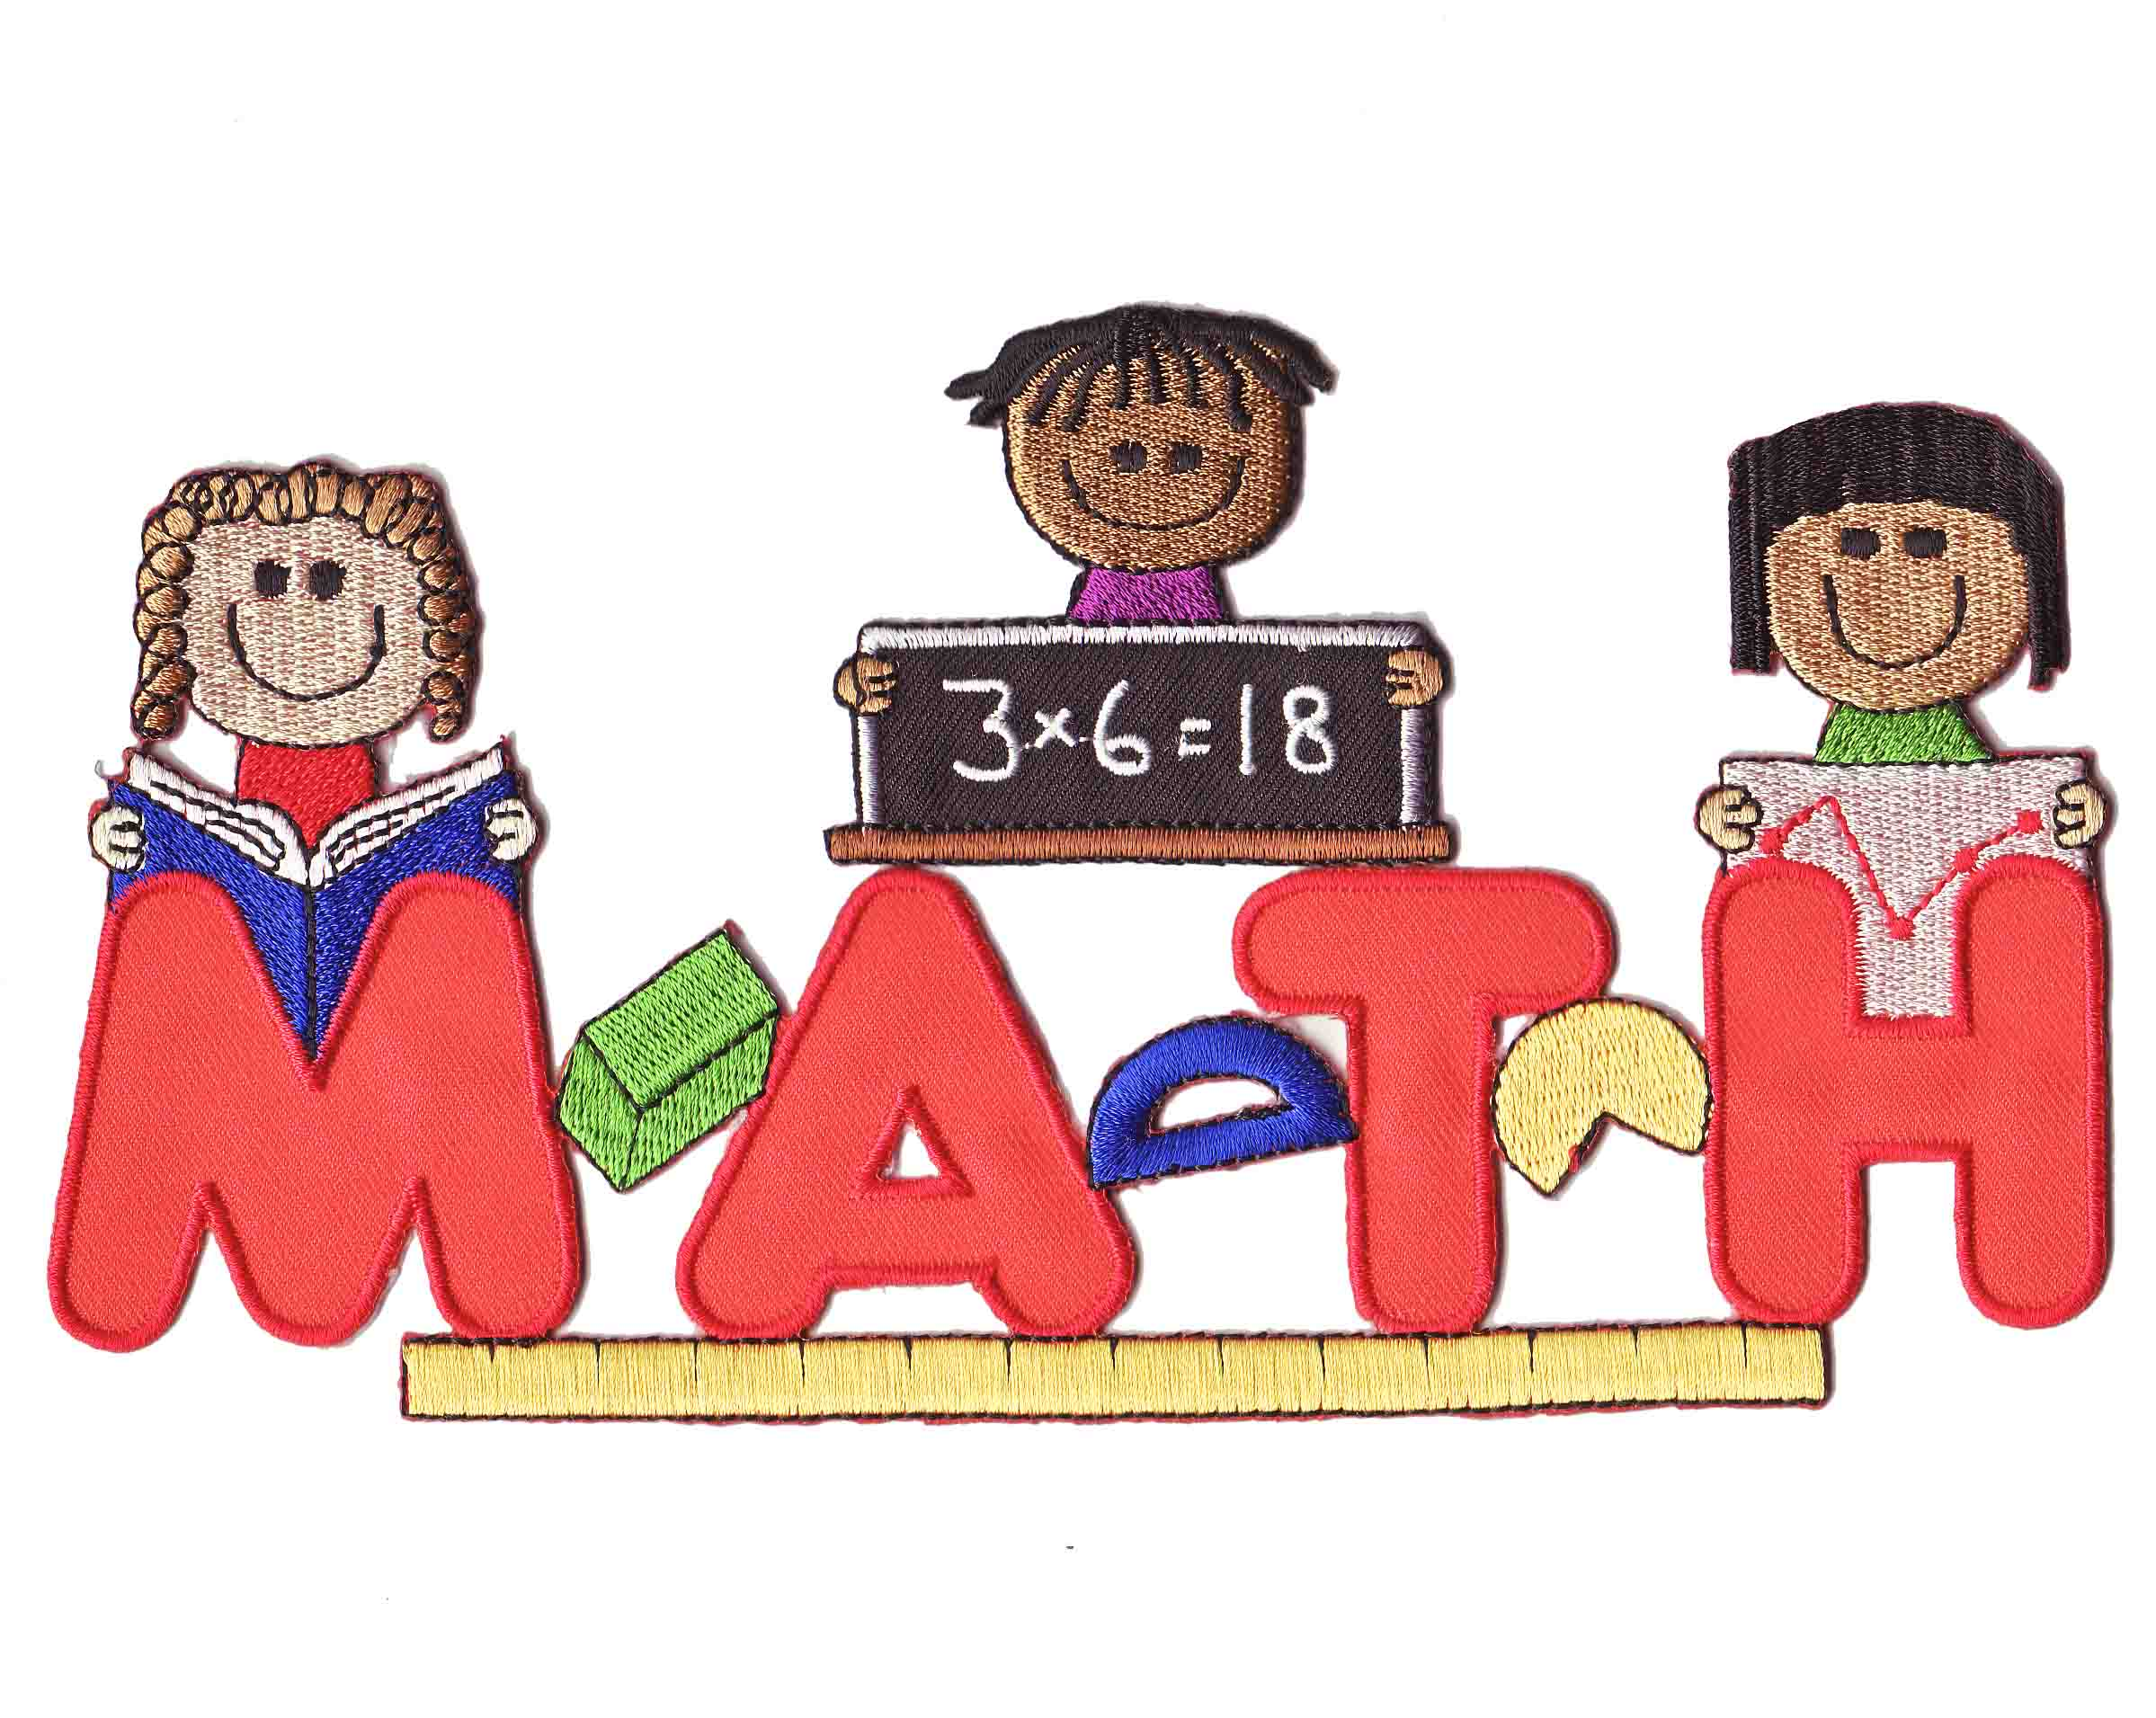 graphic royalty free download Free mathematics clip art. Math clipart for kids